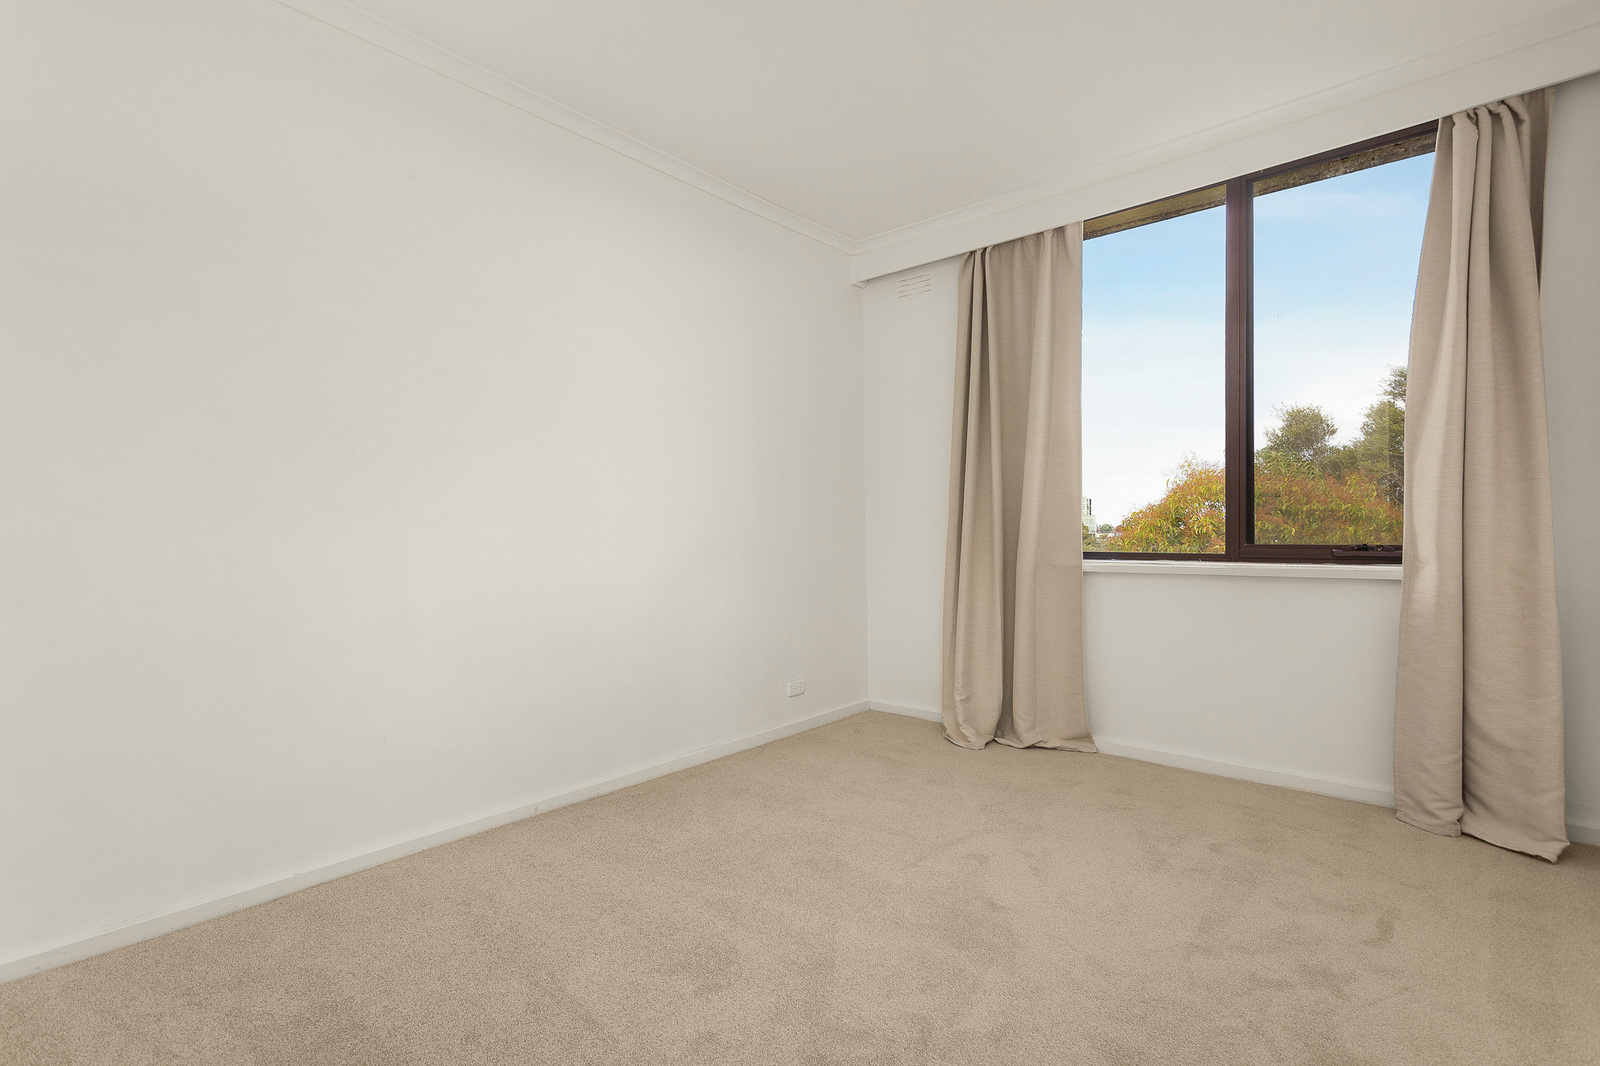 8/3 Burwood Avenue, Hawthorn East 3123 - Image 3